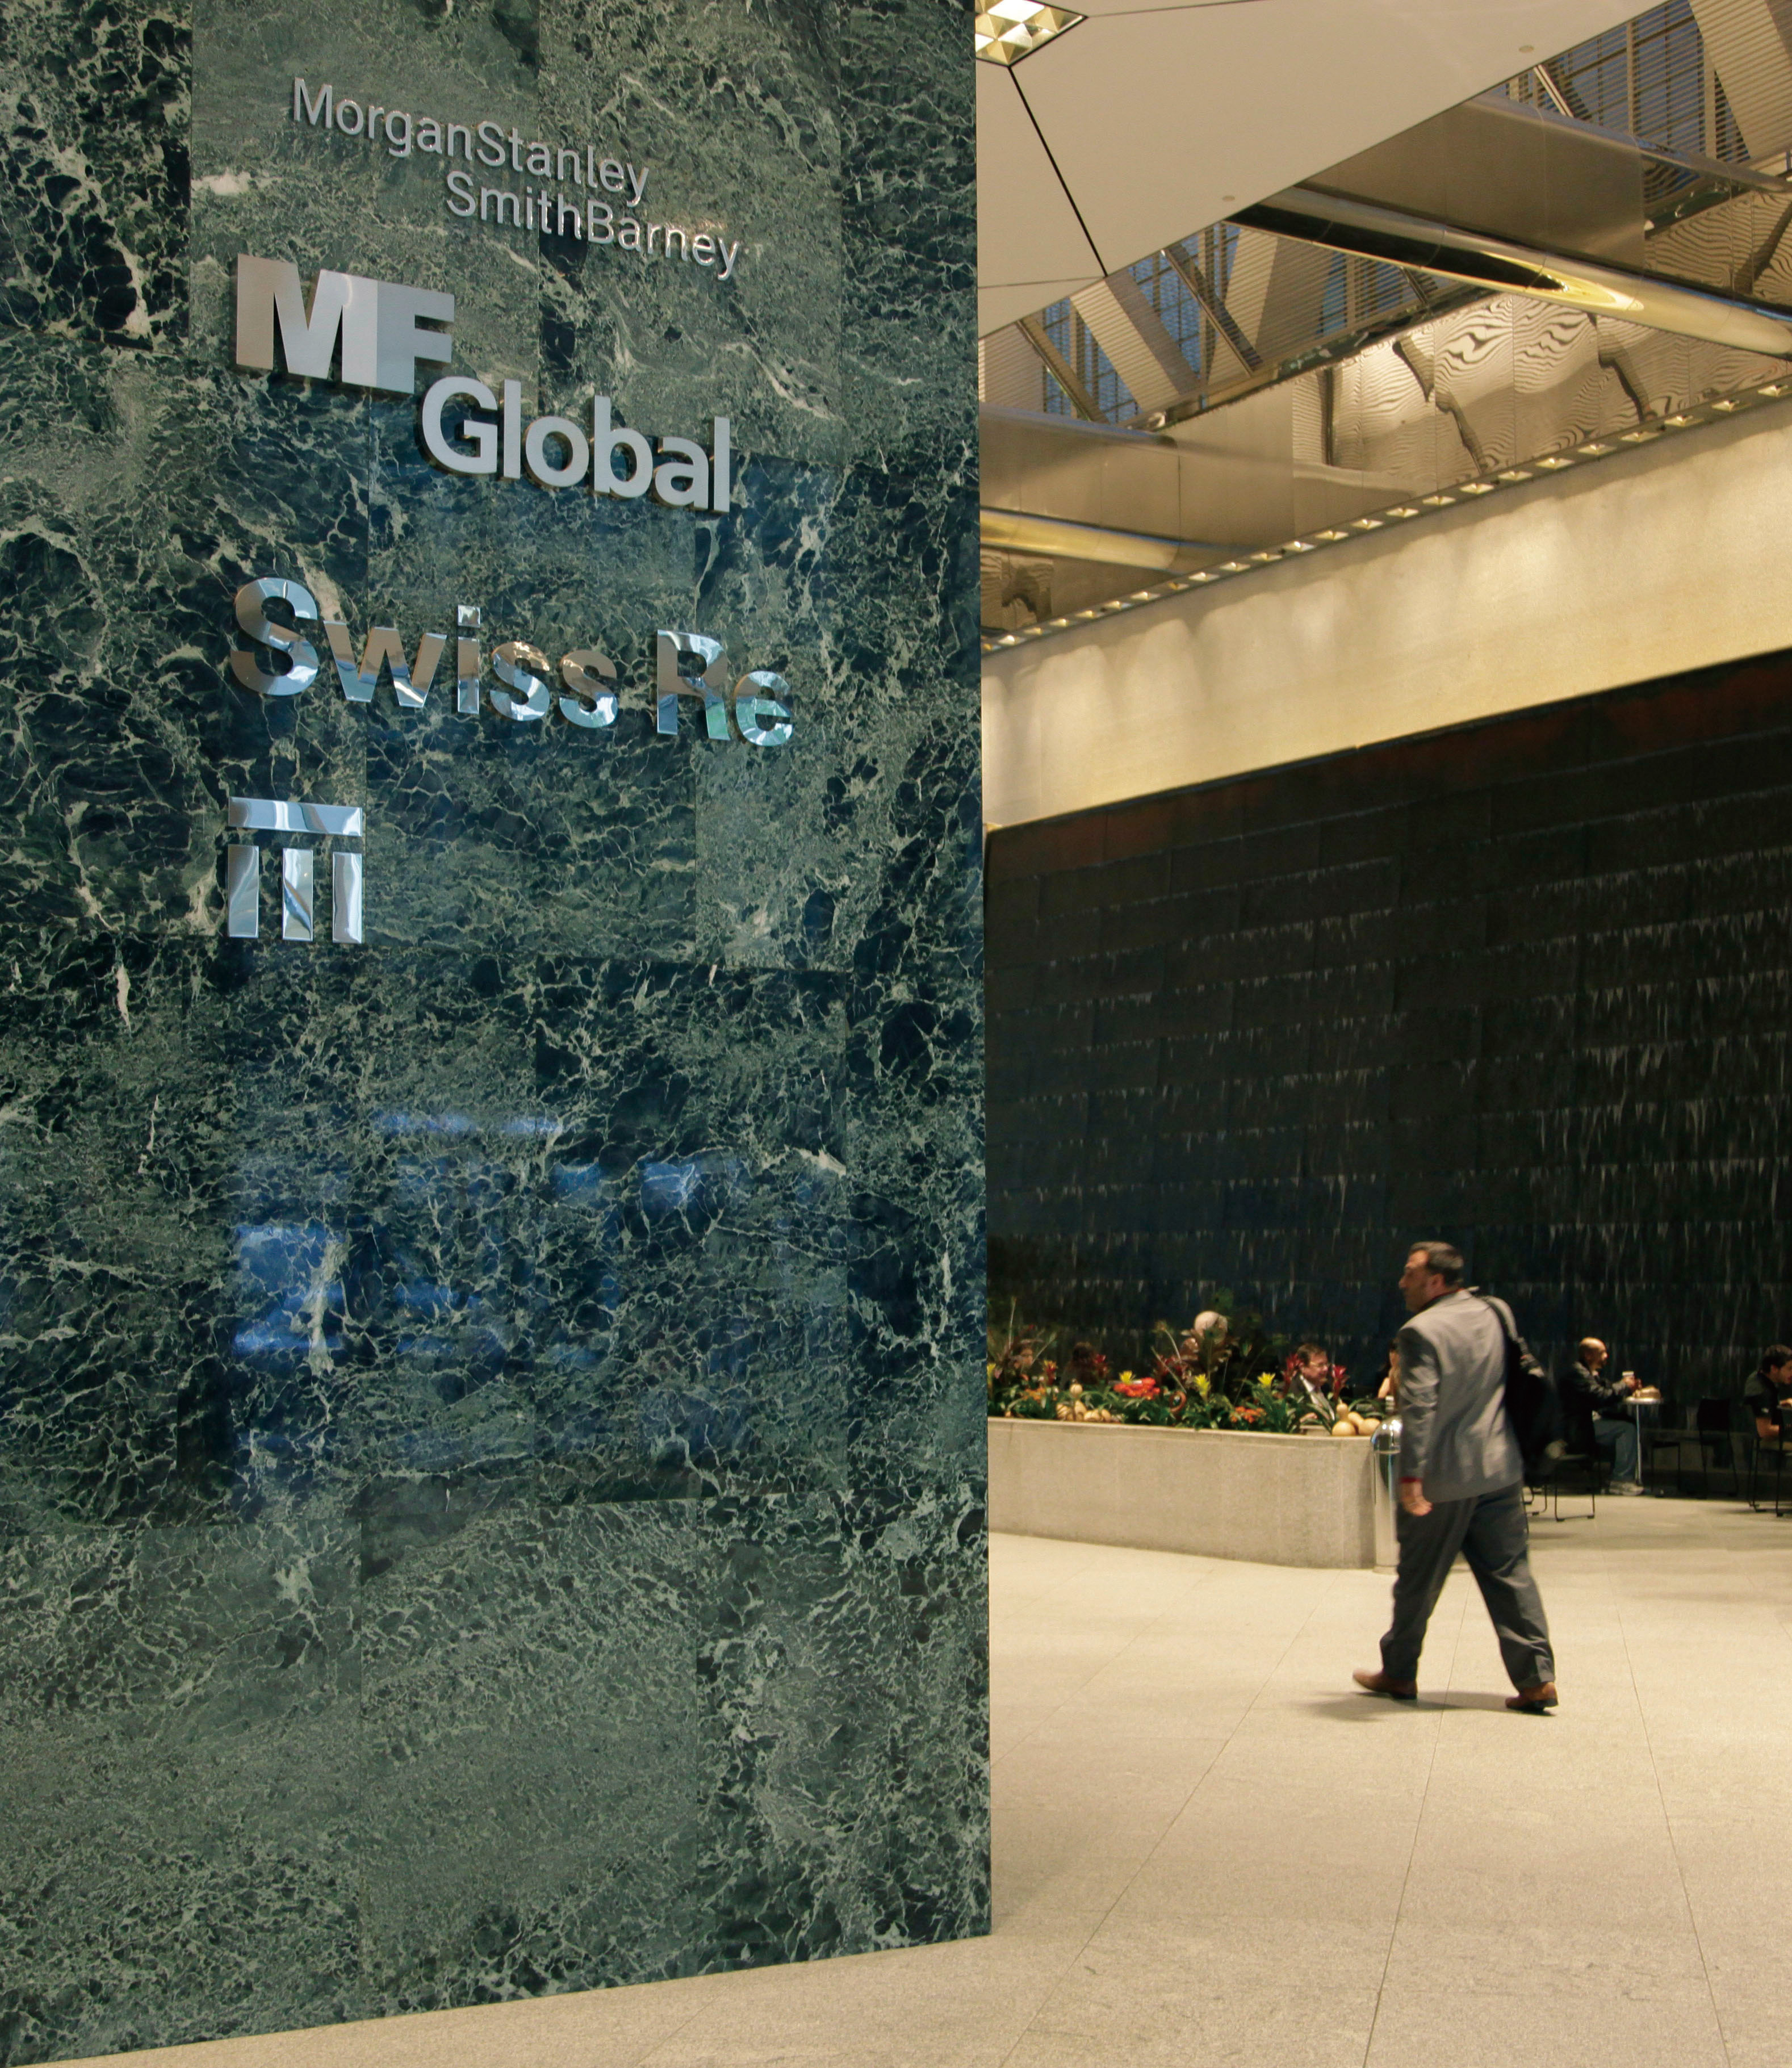 A sign for MF Global is displayed at an office building, Nov. 2, 2011 in New York. MF Global, the securities firm led by Jon Corzine, admitted using c...